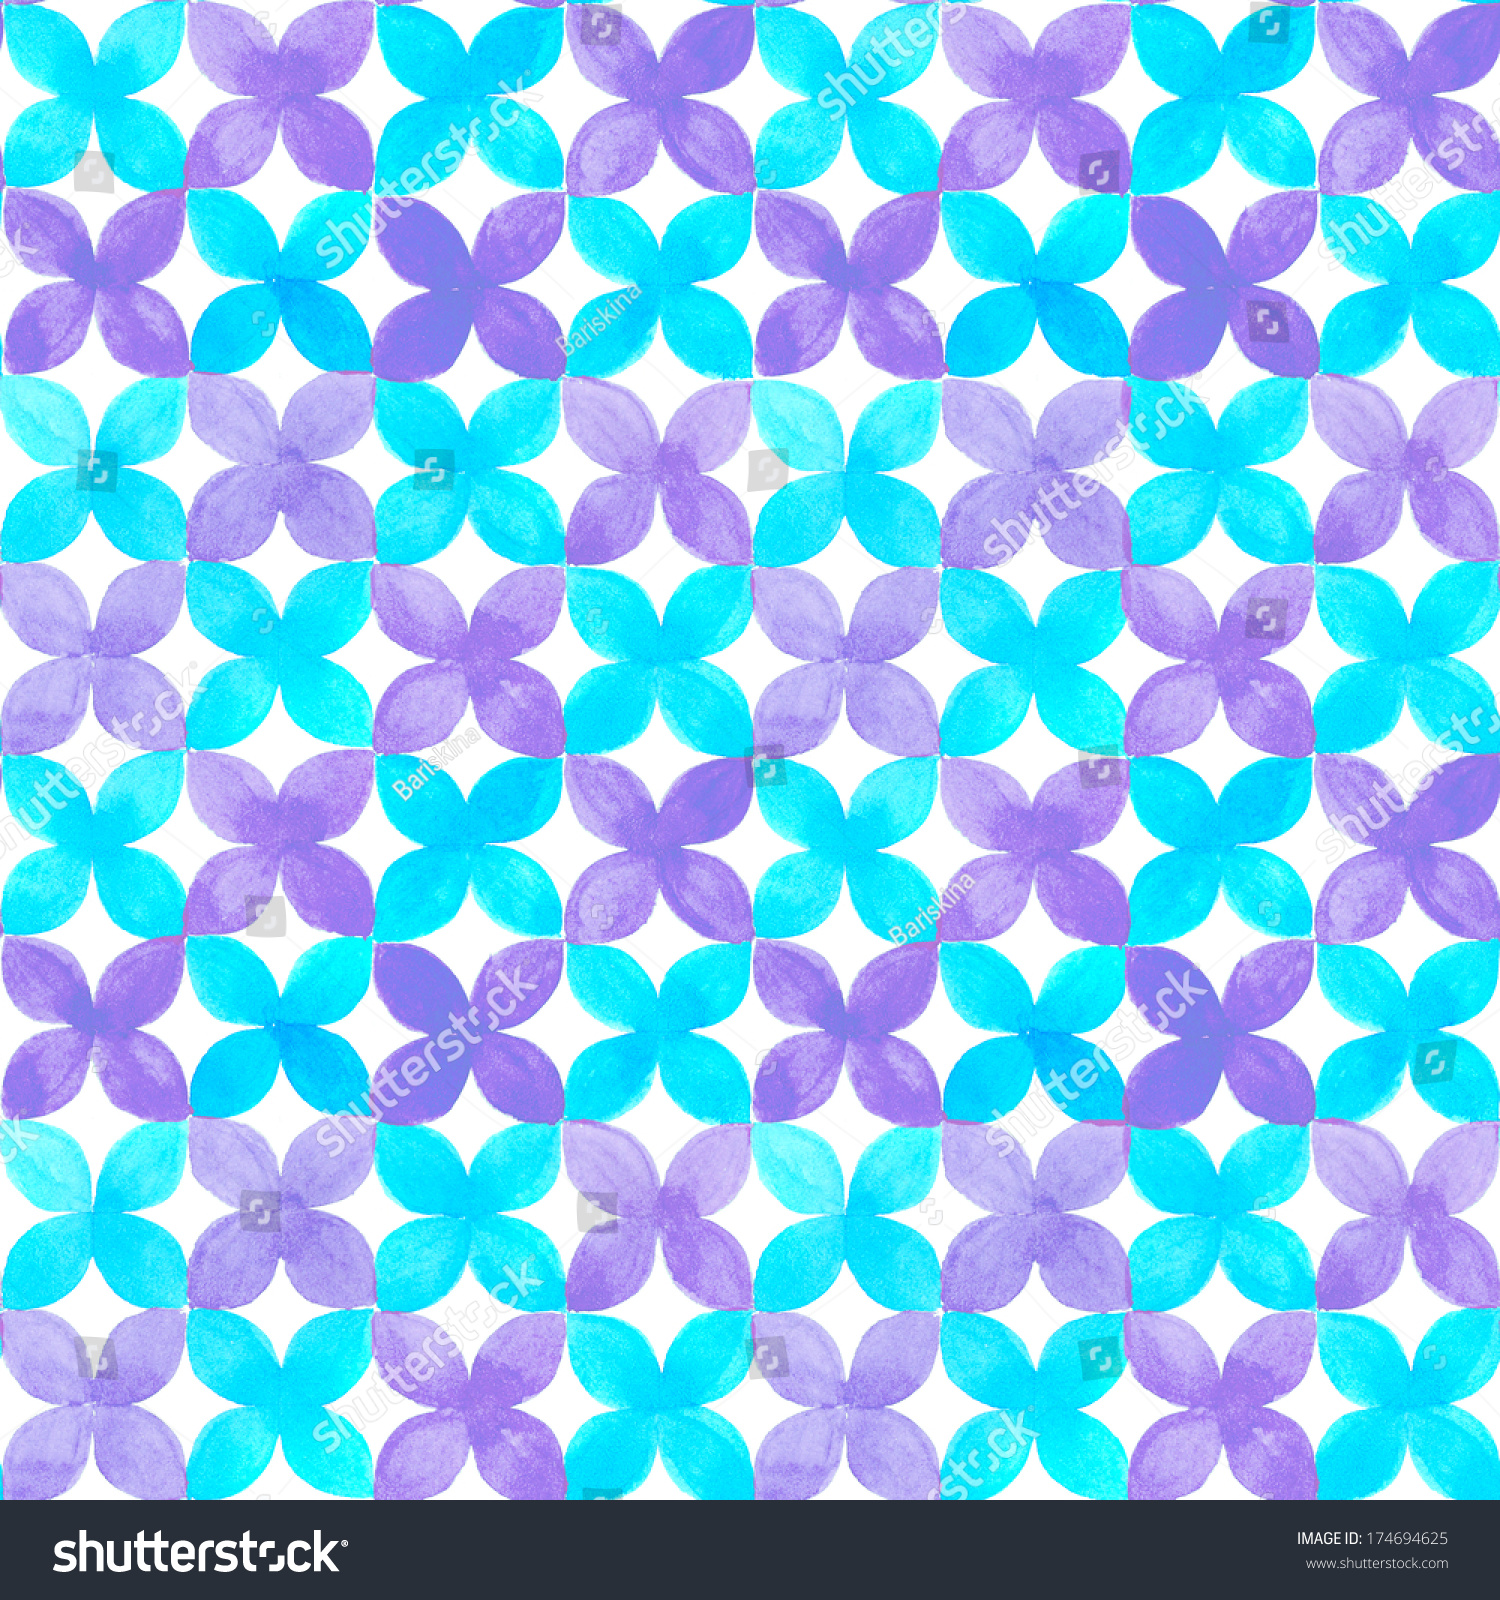 Simple seamless pattern